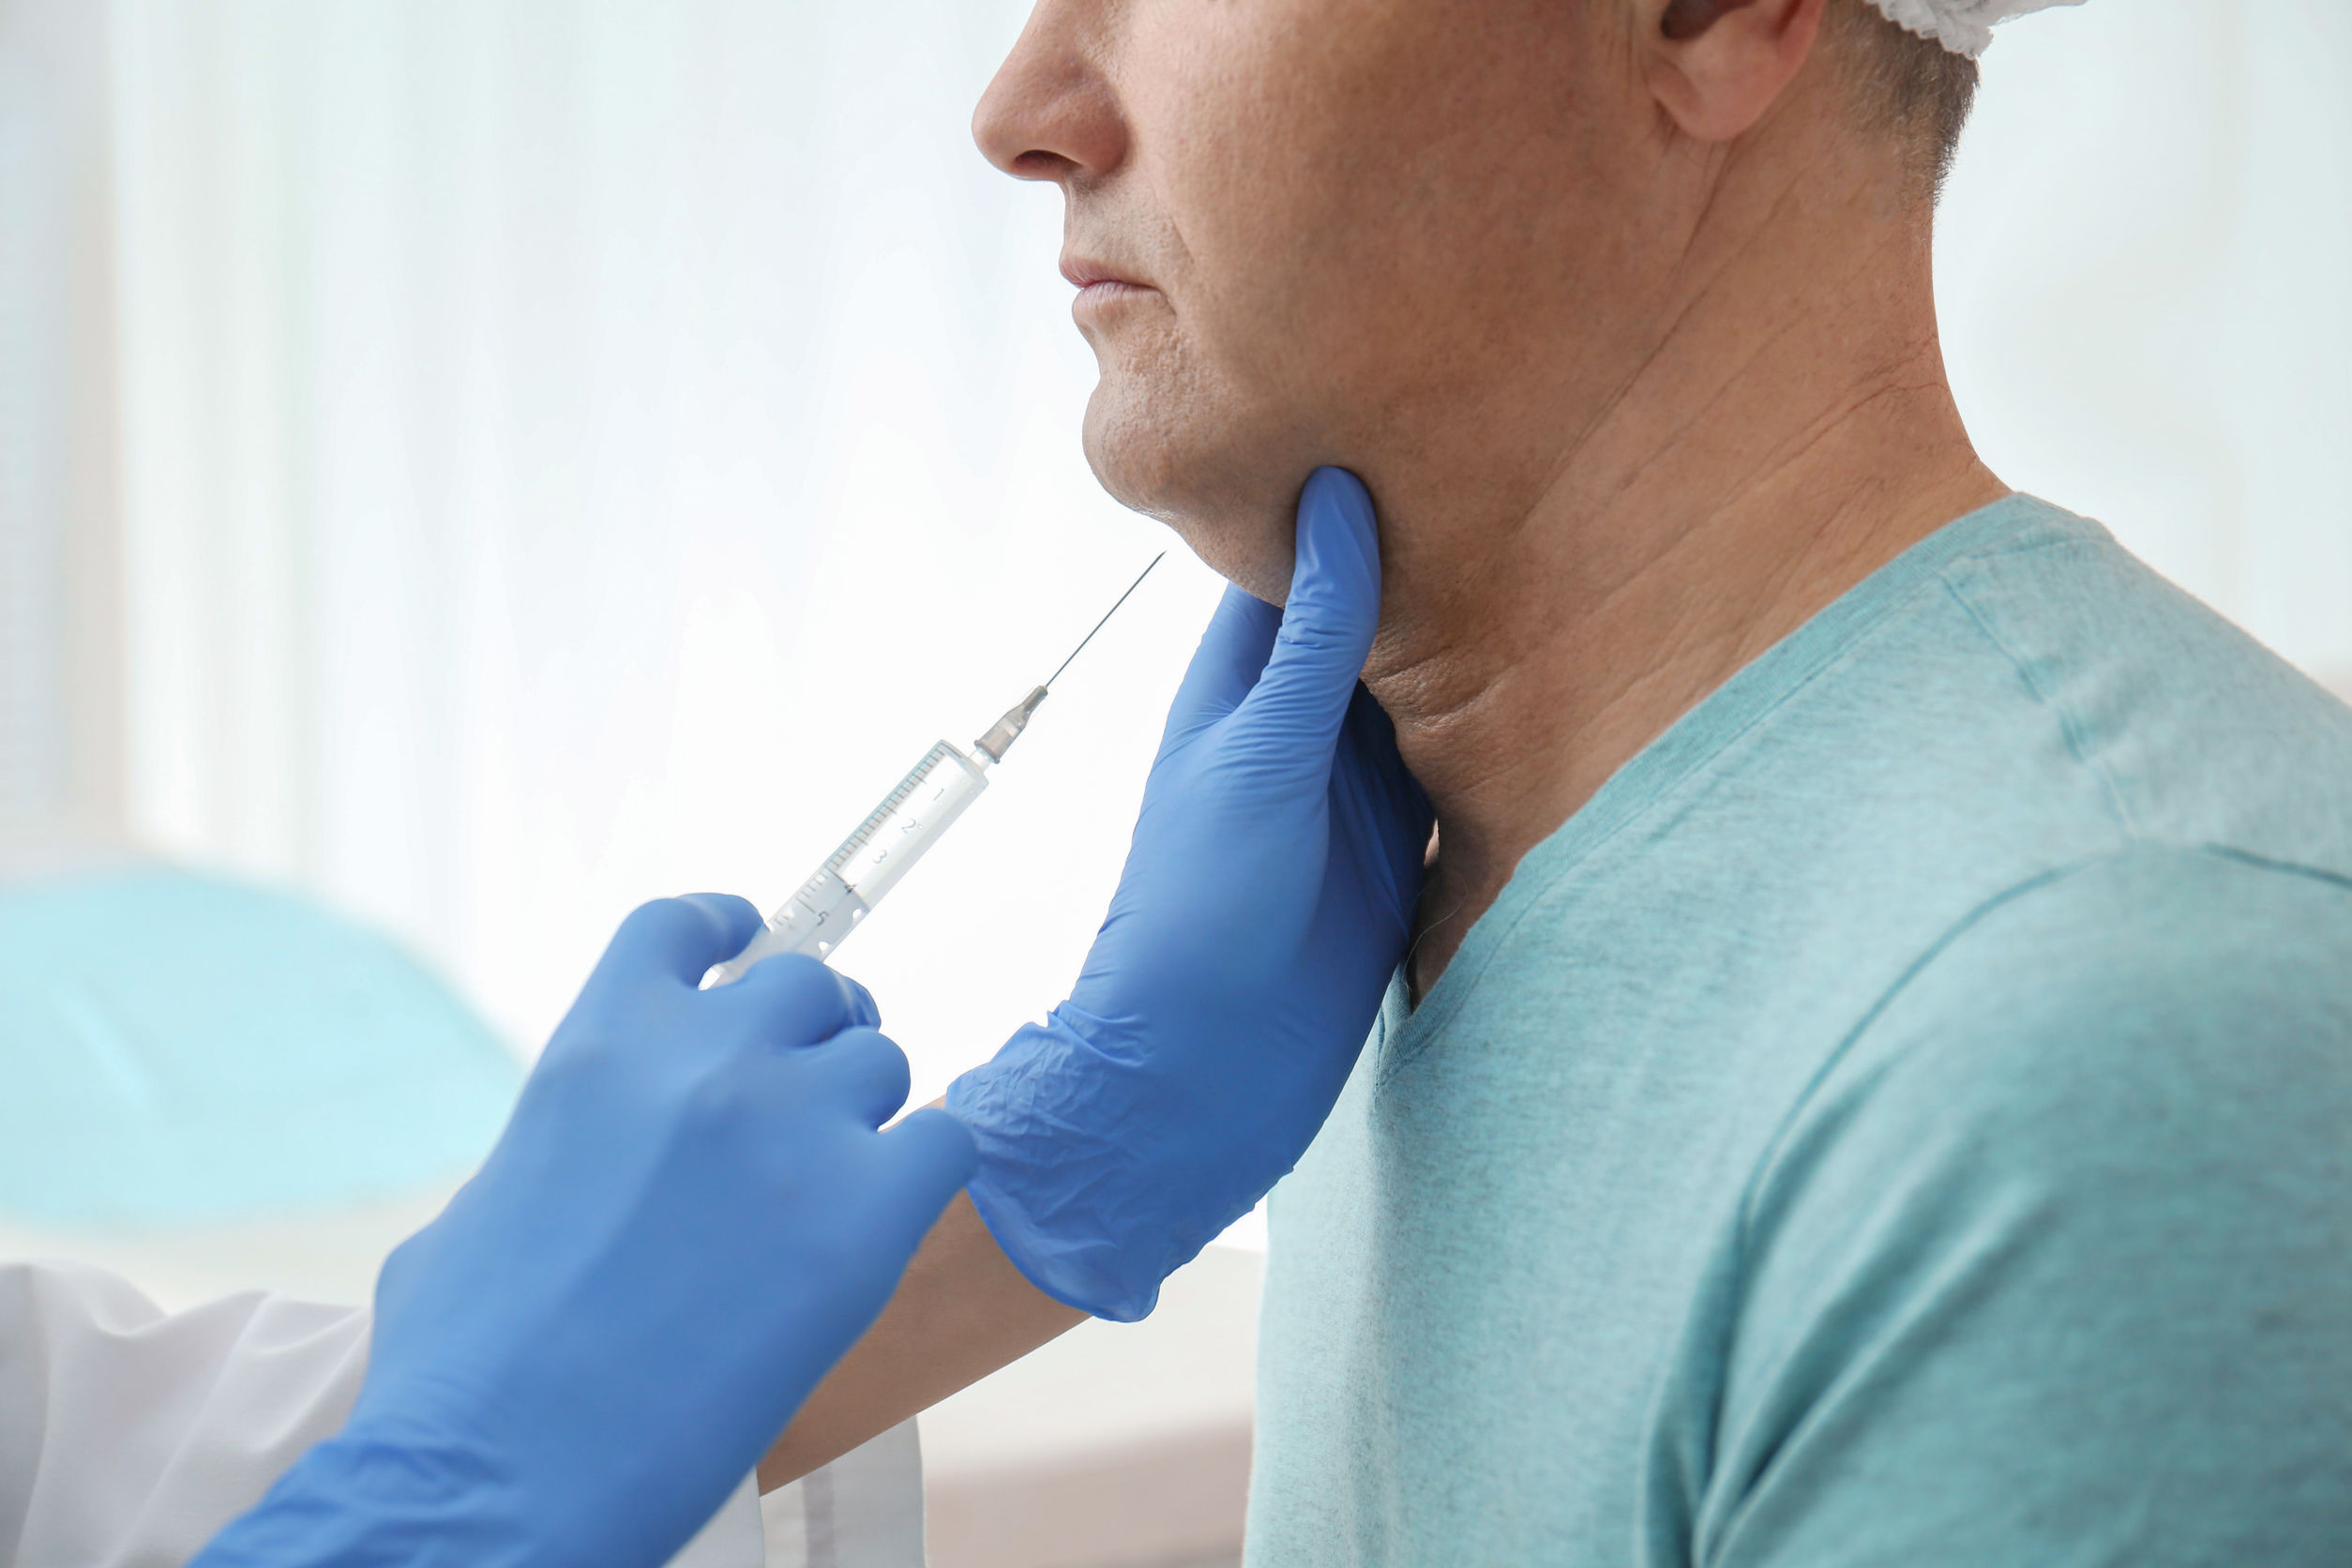 Mature man with double chin receiving injection in clinic, close